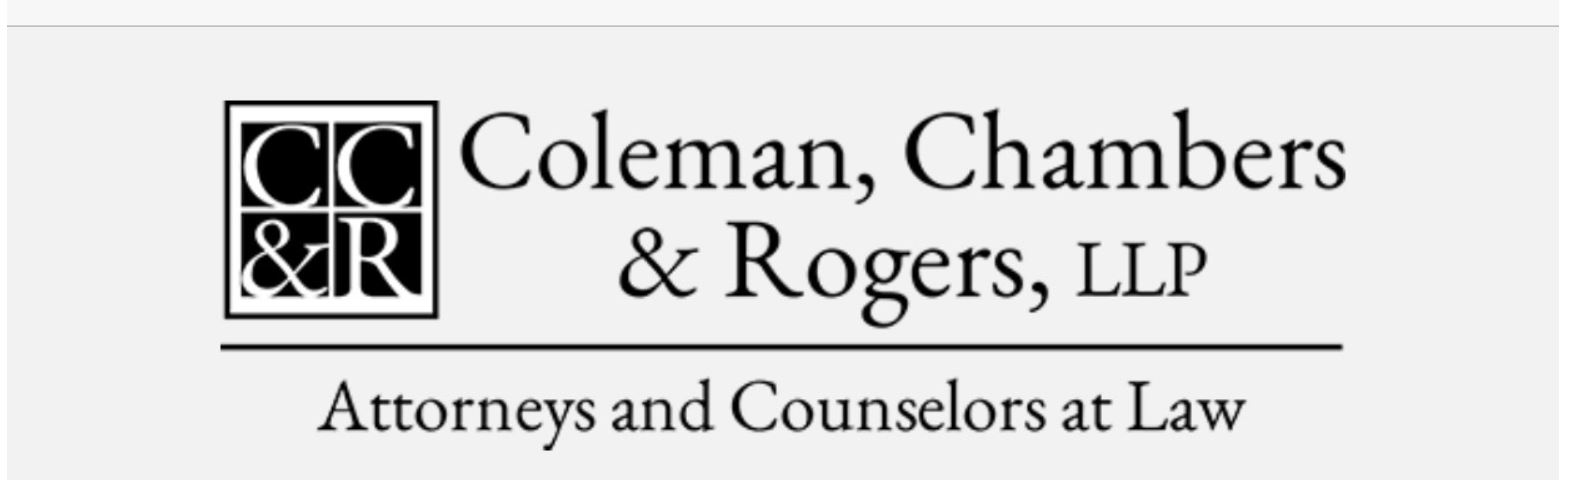 Coleman, Chambers & Rogers